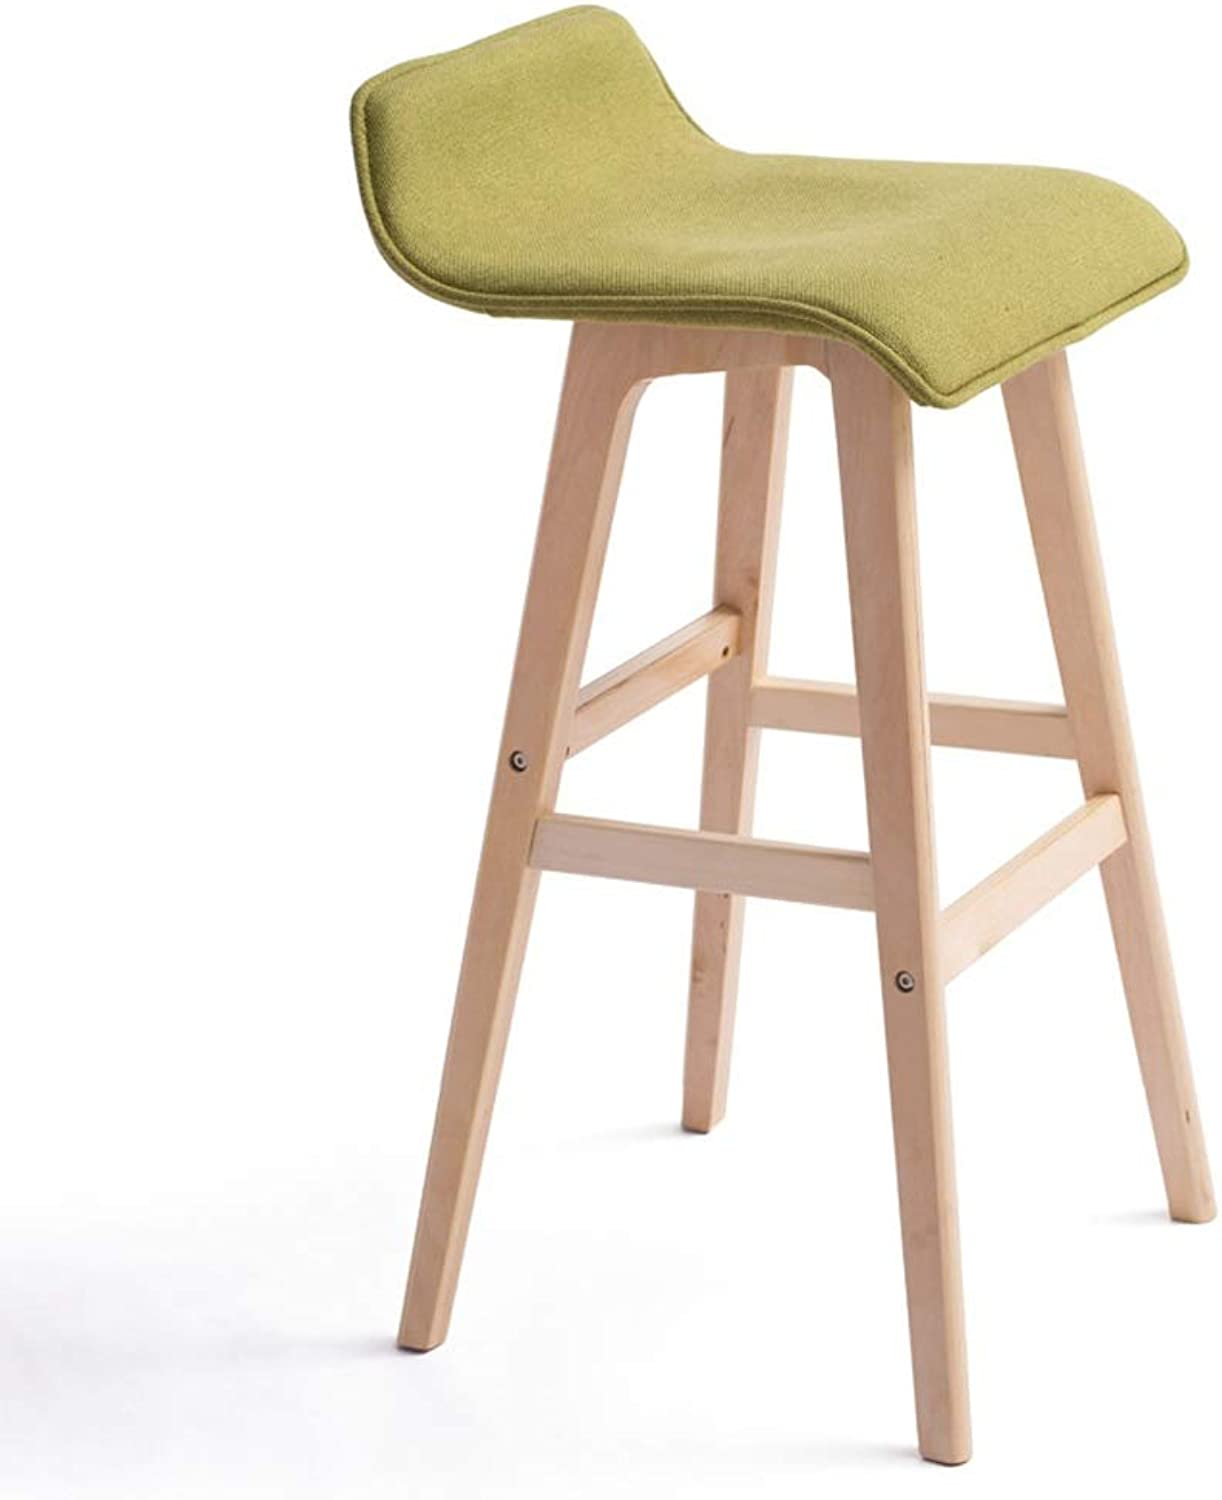 Solid Wood bar Chair Coffee Chair Counter Stool bar Stool Fabric Cushion Detachable Suitable for Coffee Shop Living Room Club SUGEWANJBD (color   Green, Size   74cm)